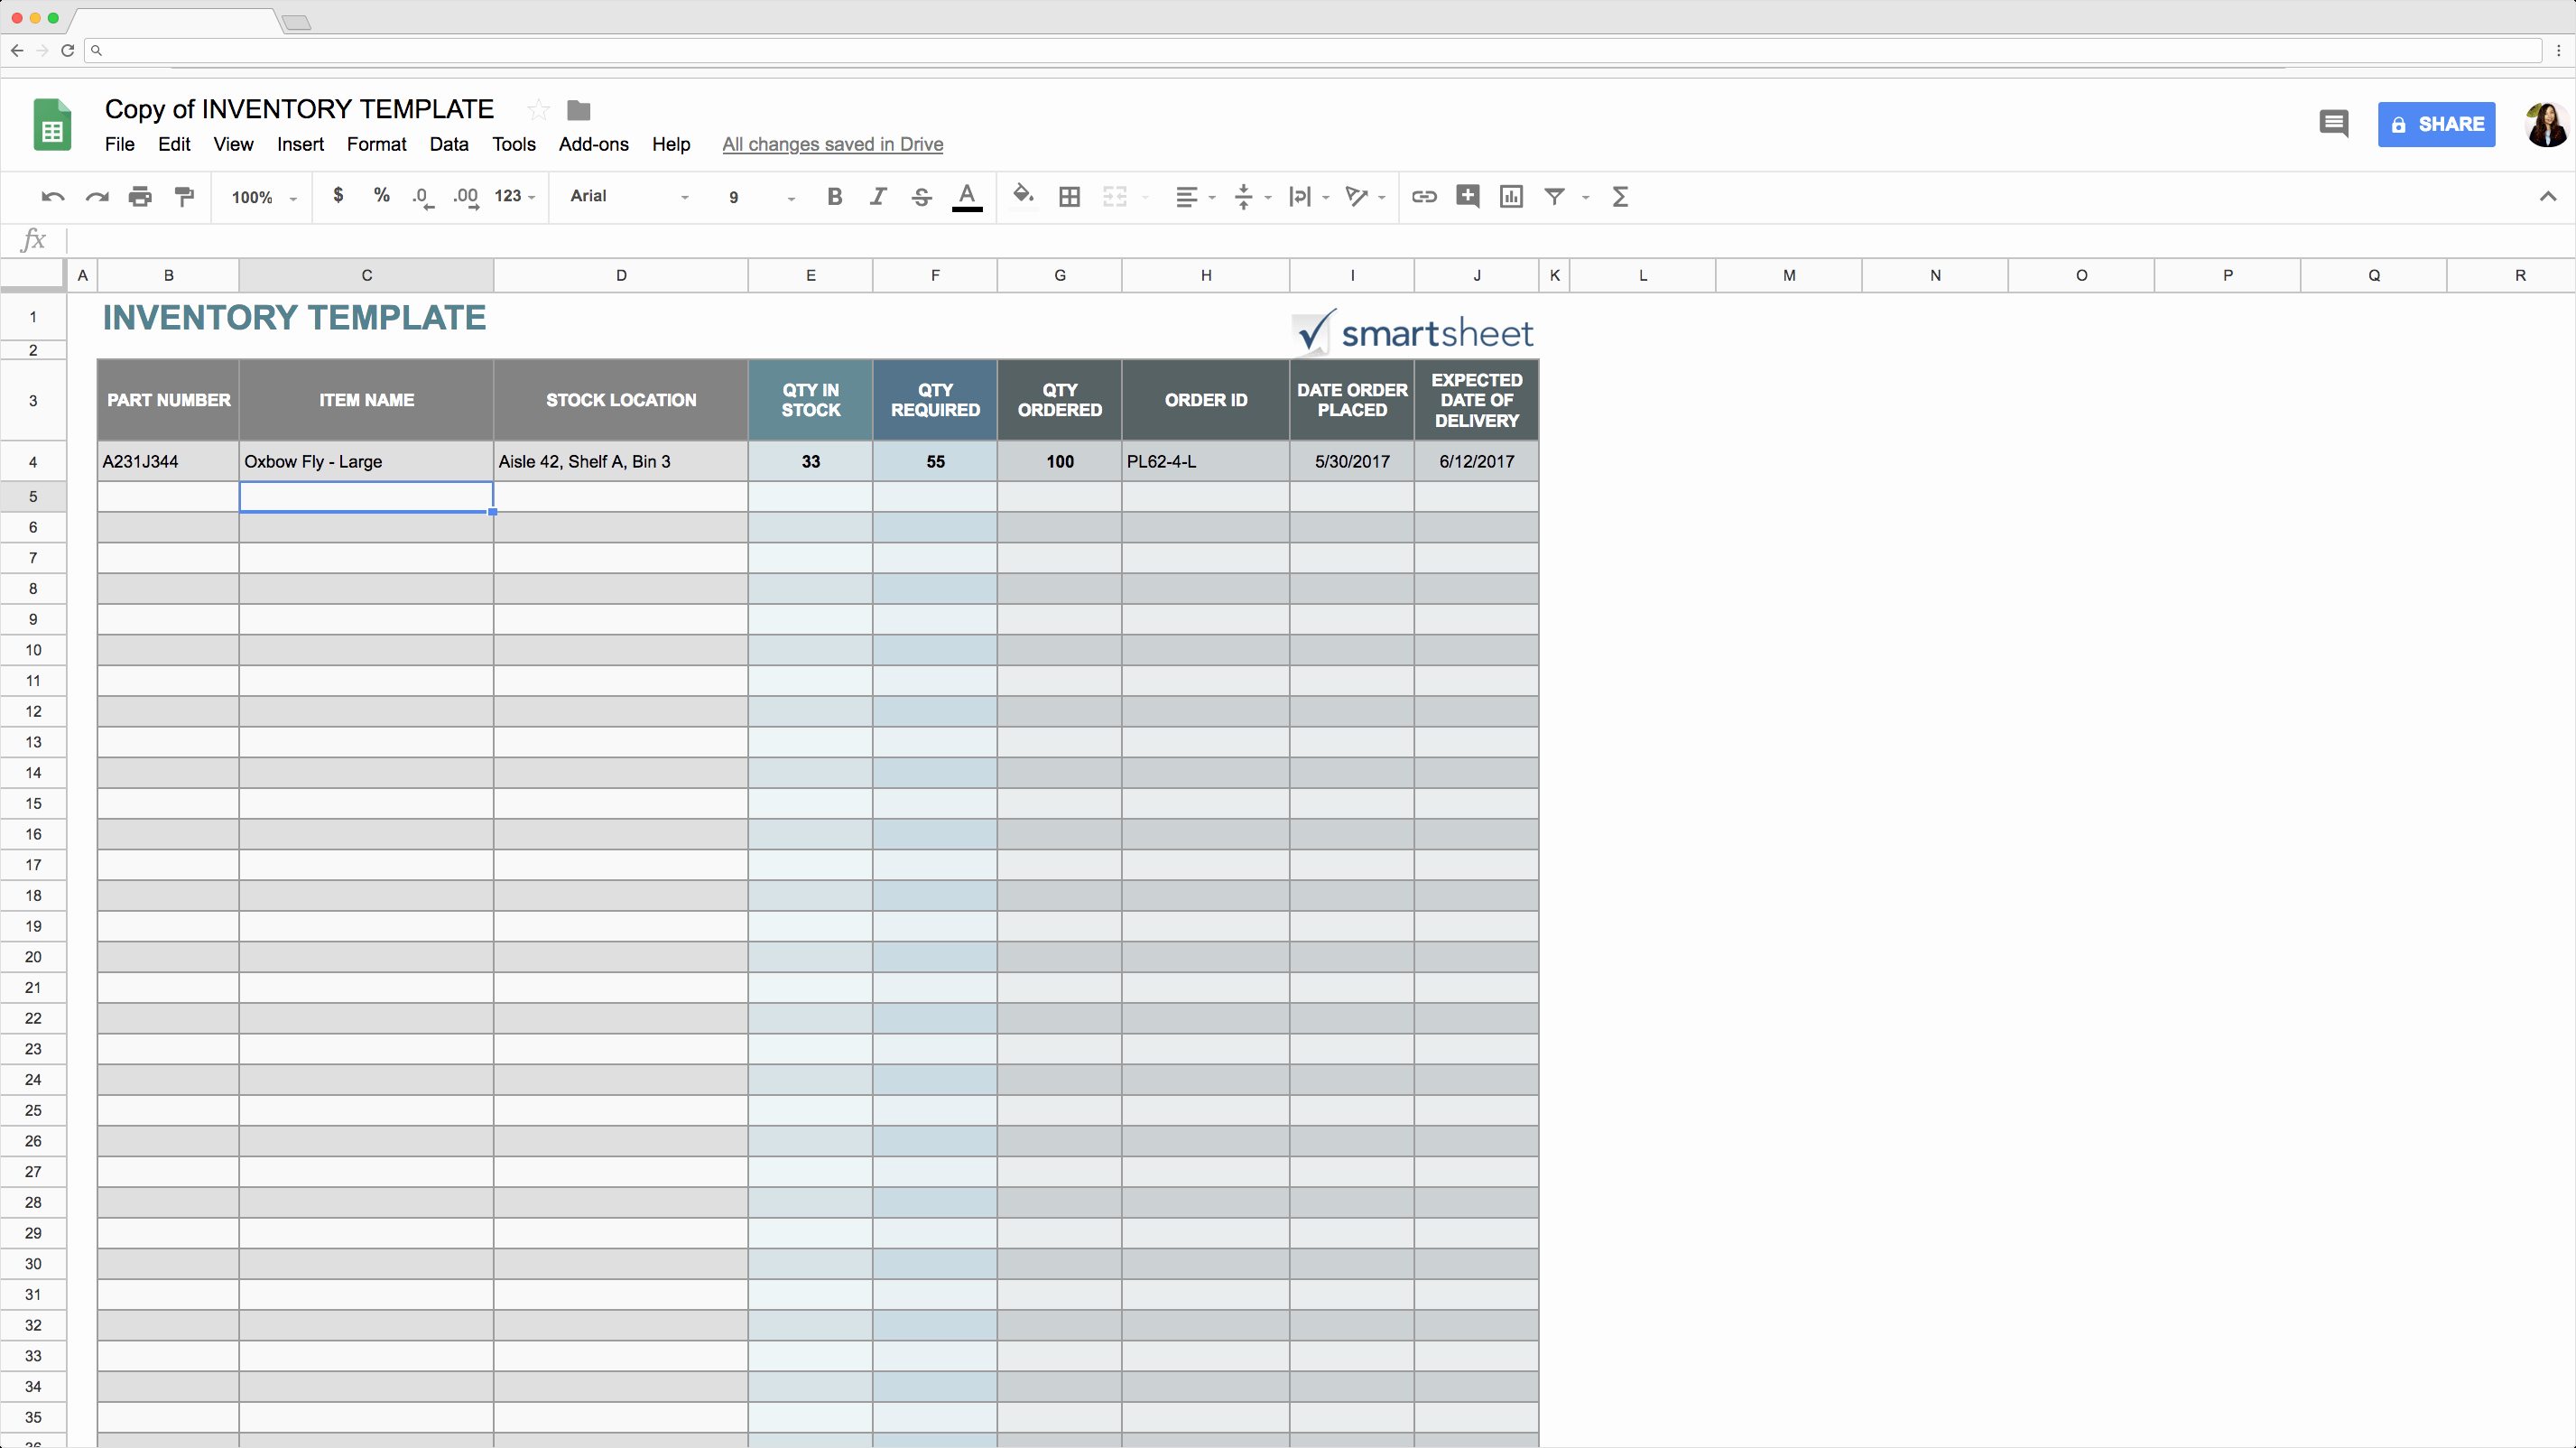 Free Inventory Spreadsheet Template Best Of top 5 Free Google Sheets Inventory Templates Blog Sheetgo